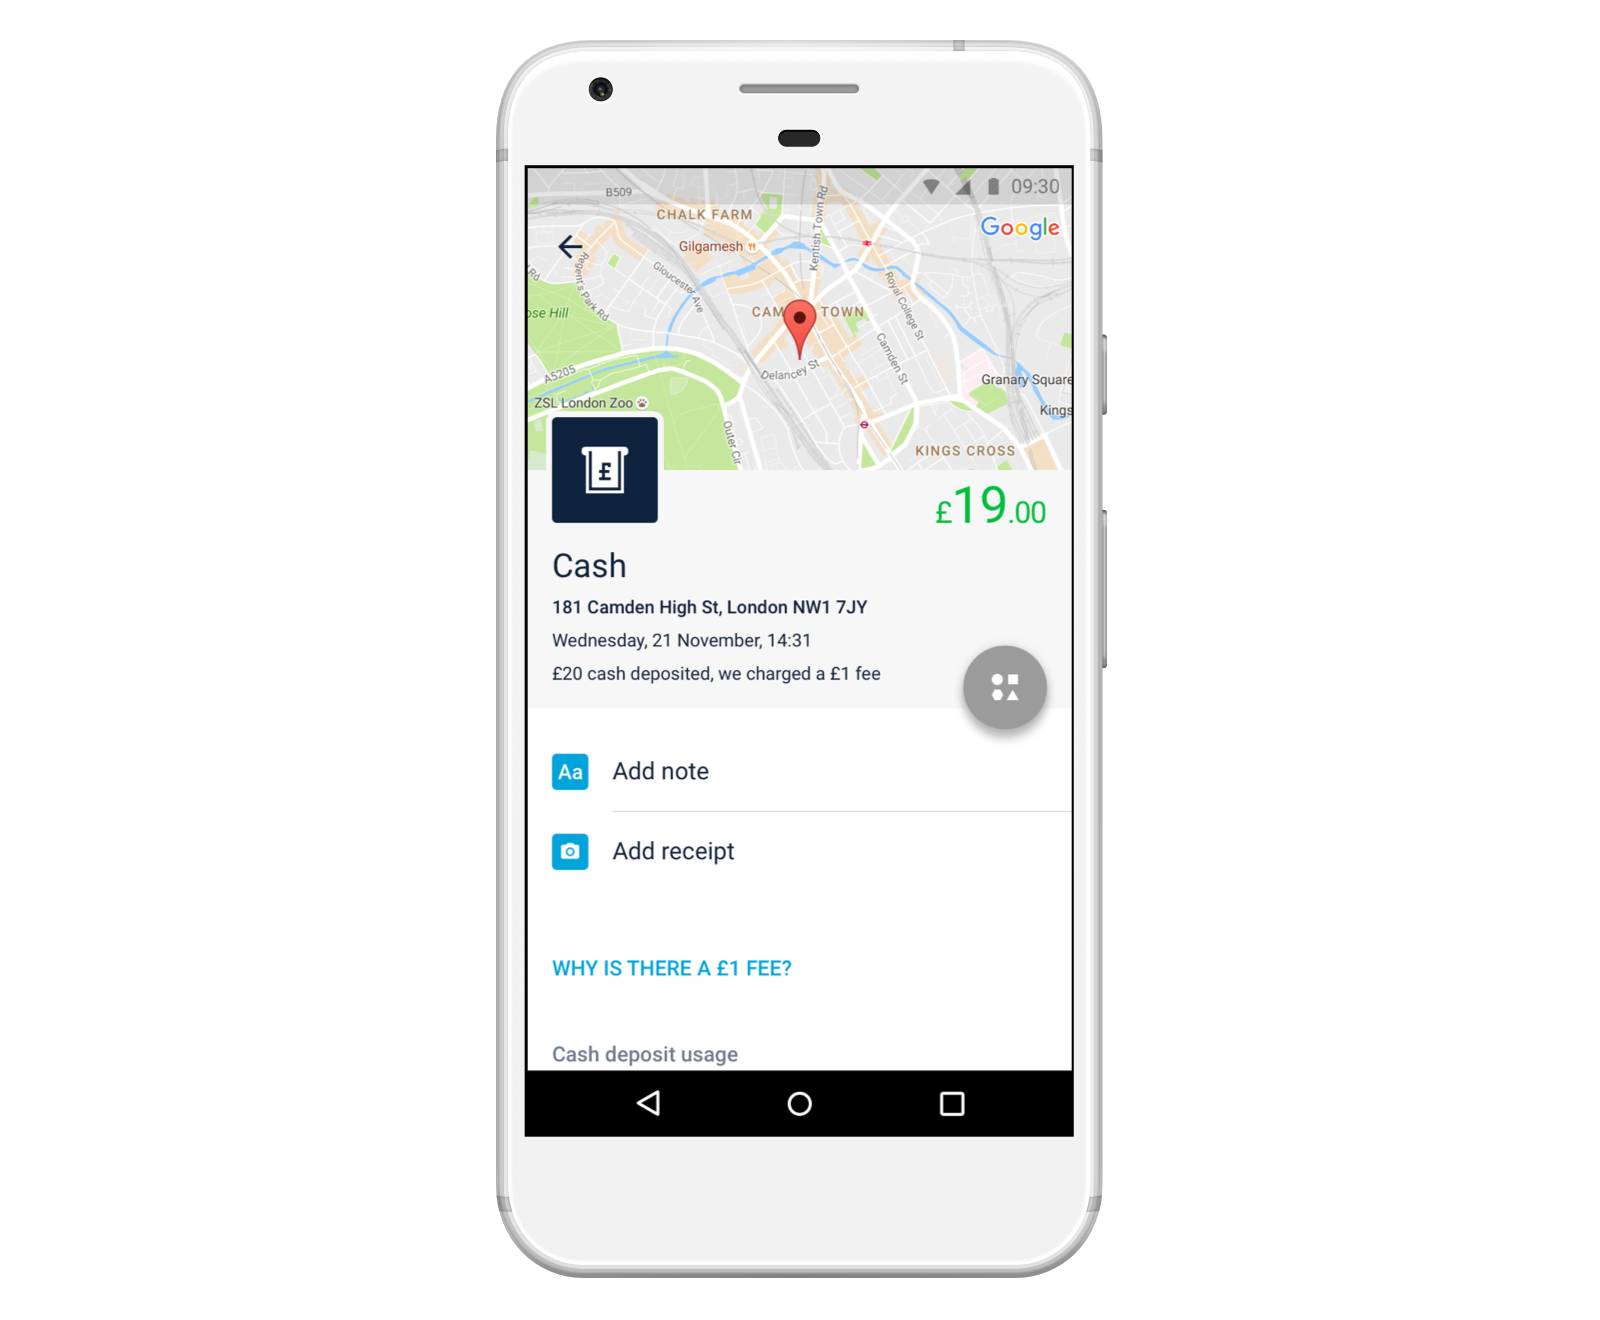 Screen showing a cash deposit transaction in the Monzo app